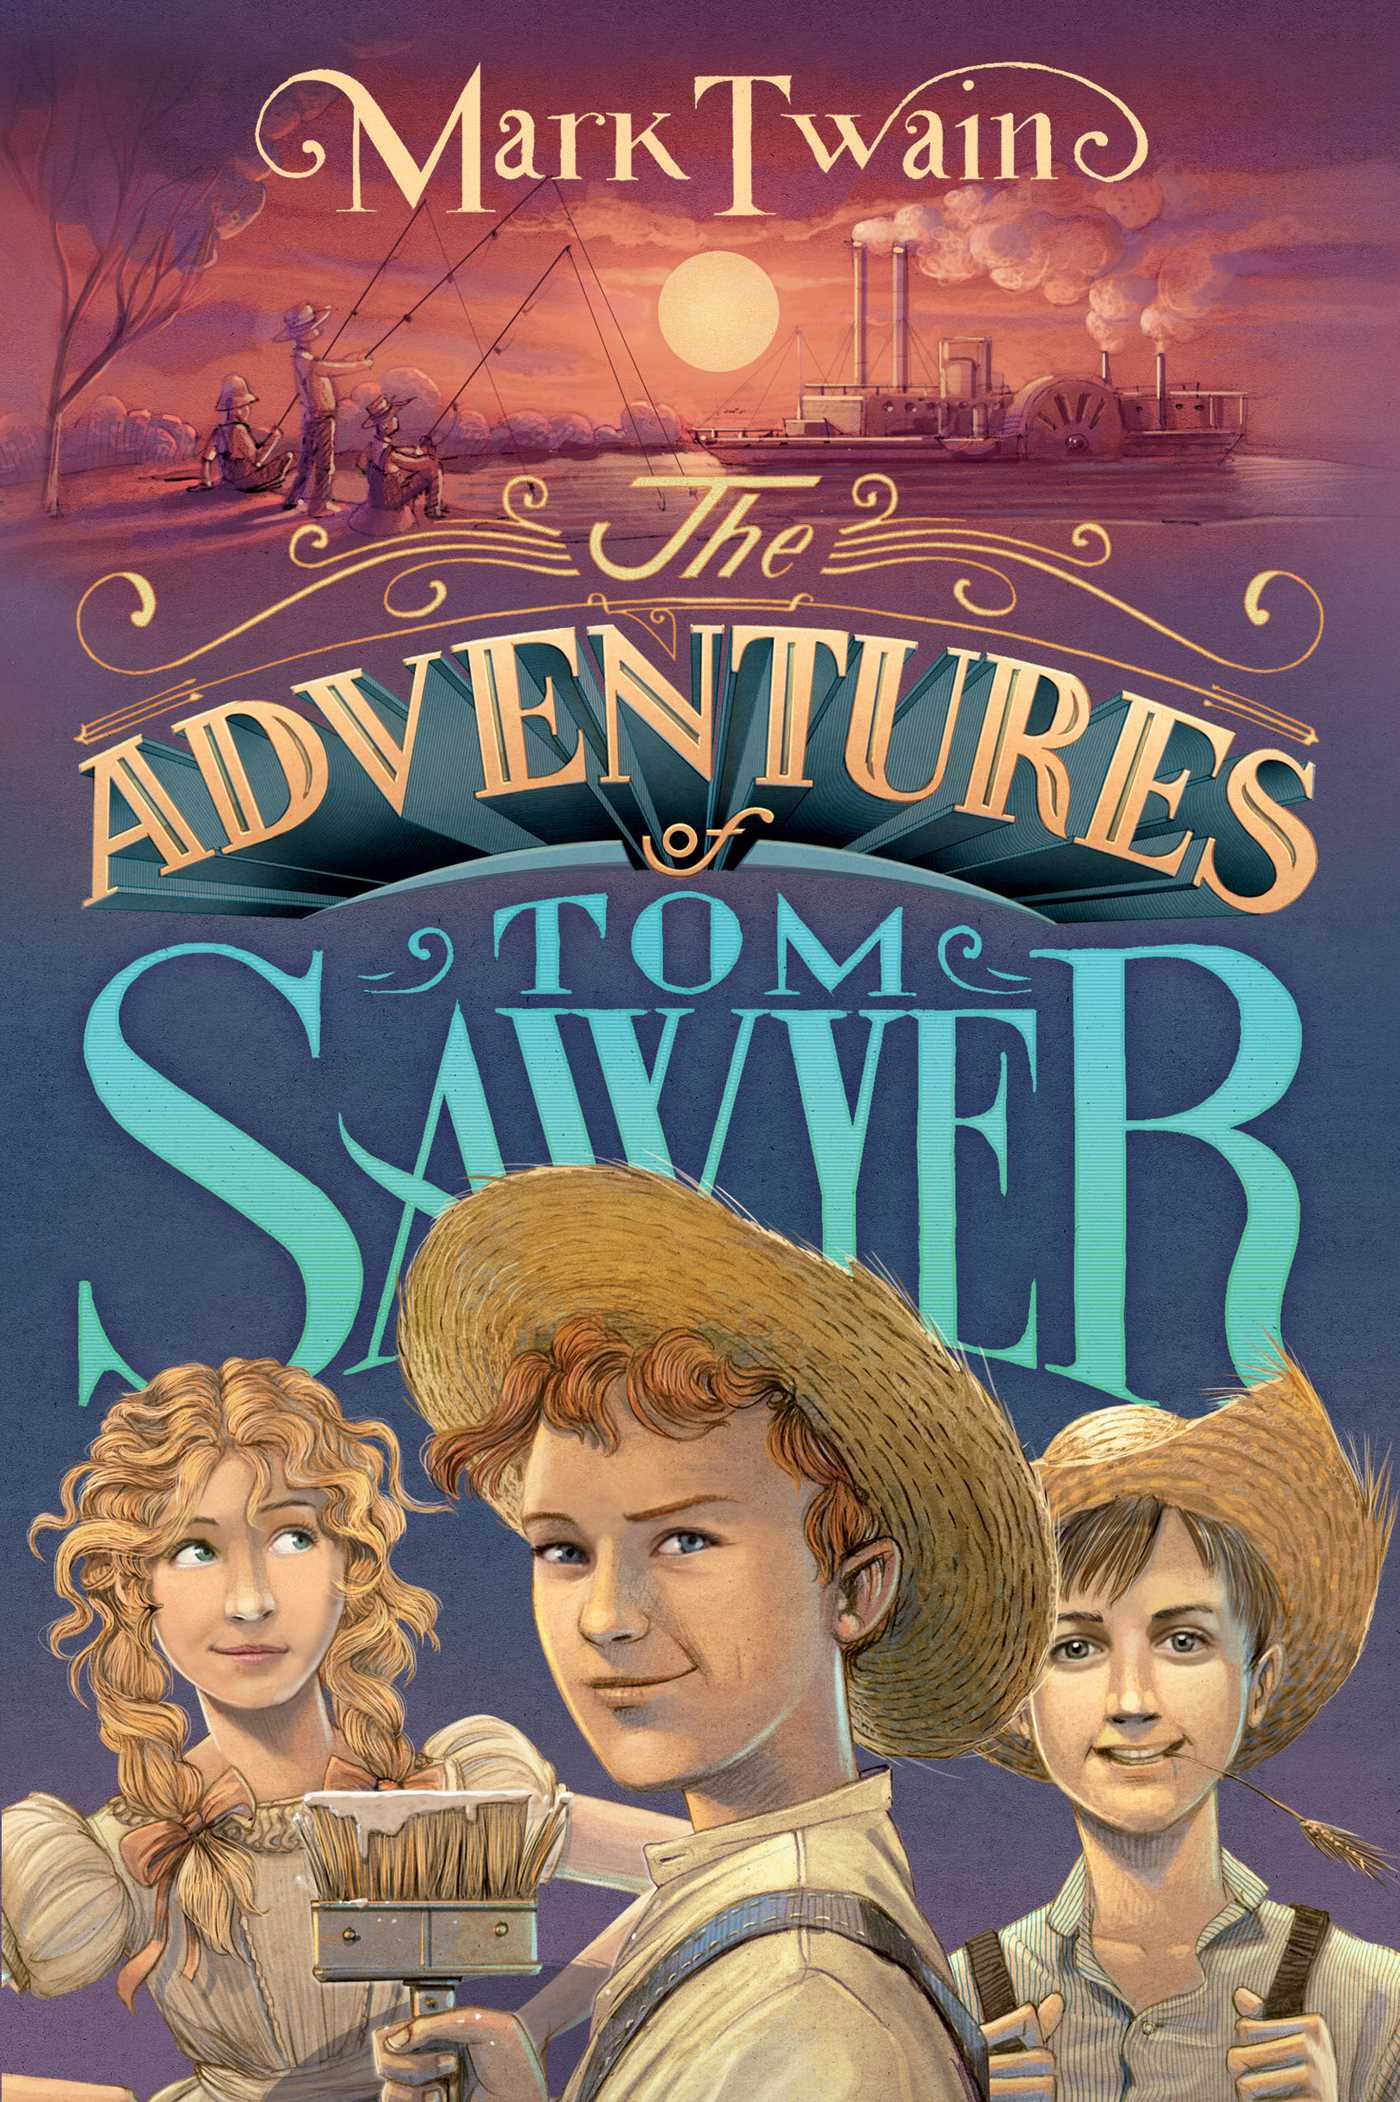 the adventures of tom sawyer book by mark twain iacopo bruno the adventures of tom sawyer 9781481403771 hr